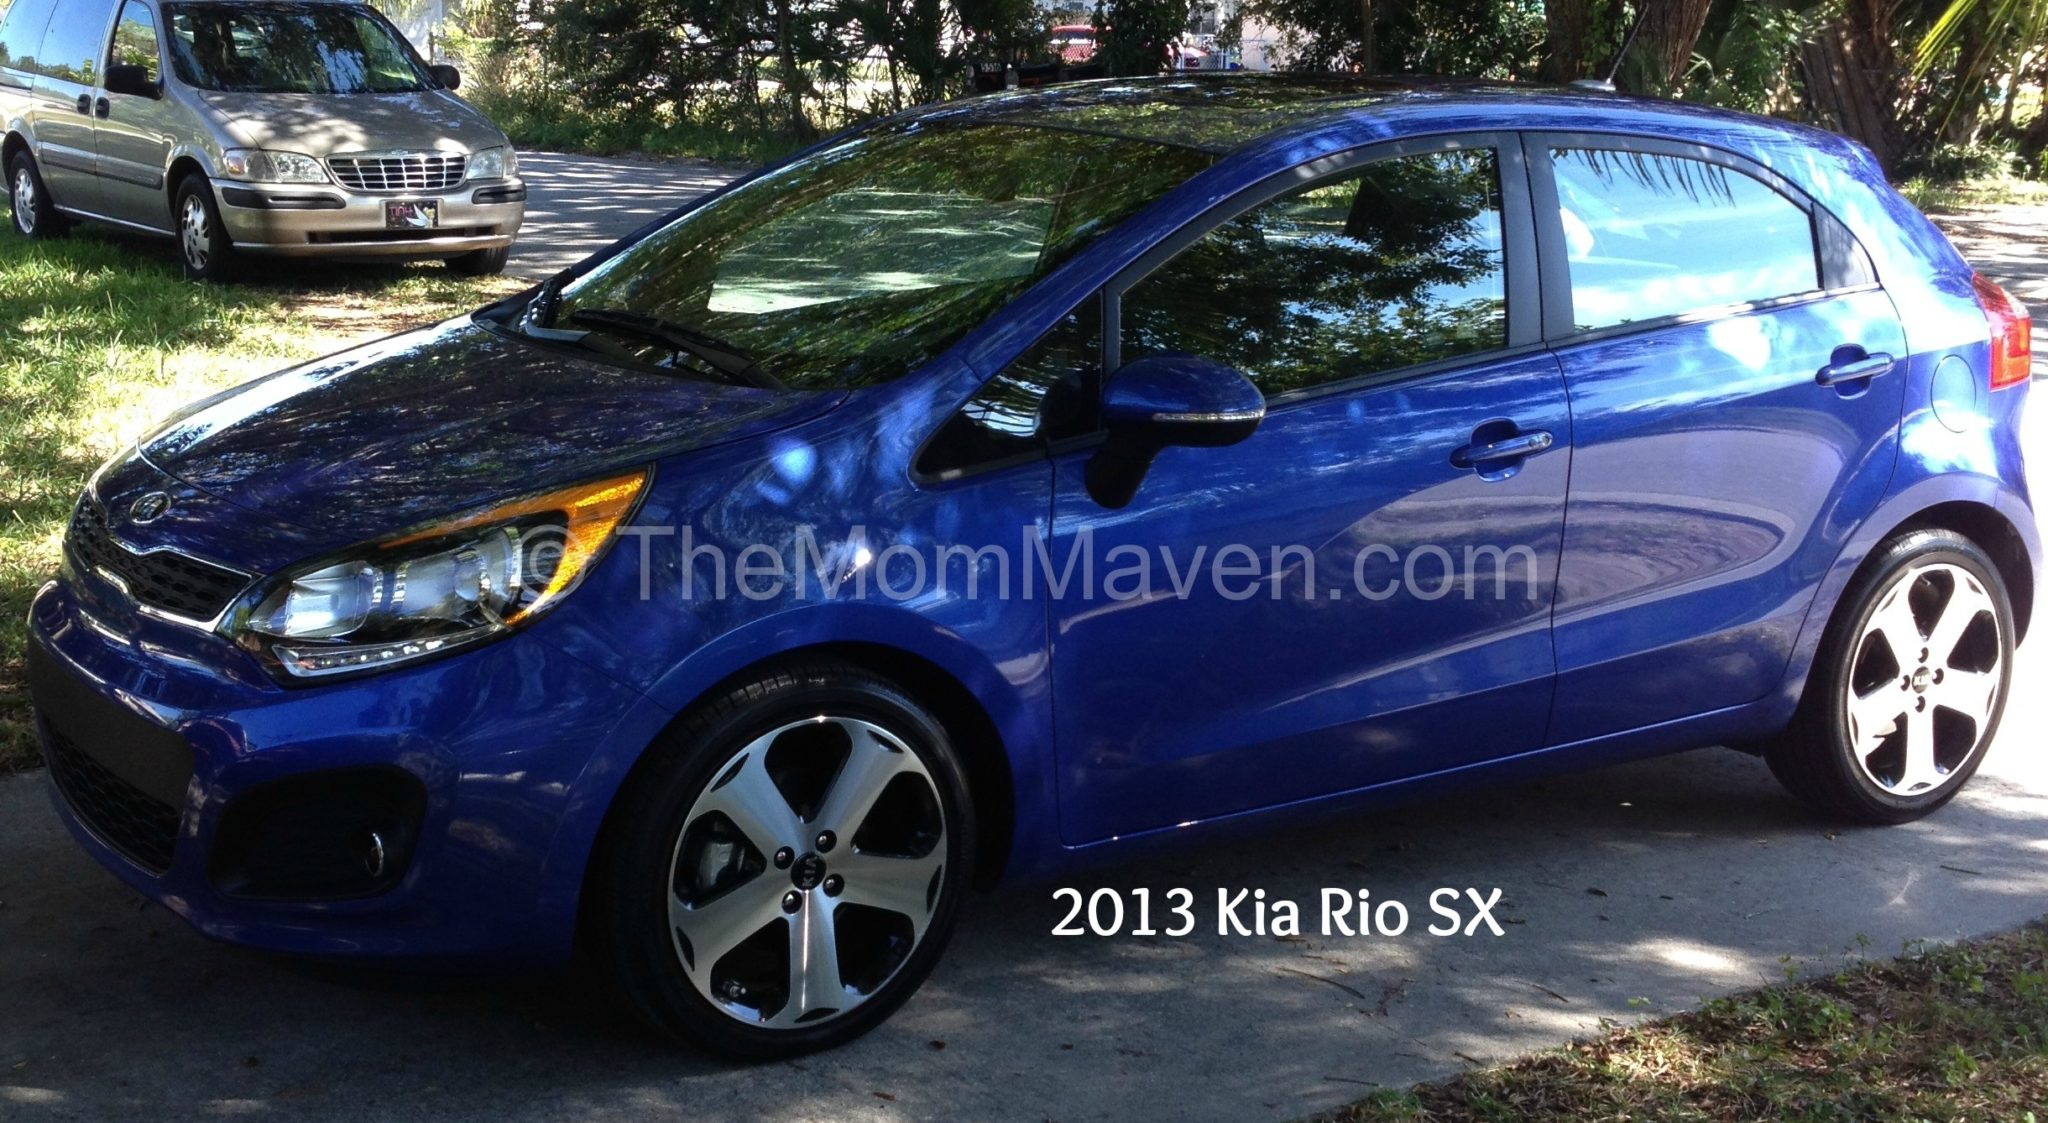 2013 kia rio sx review drivesti the mom maven. Black Bedroom Furniture Sets. Home Design Ideas